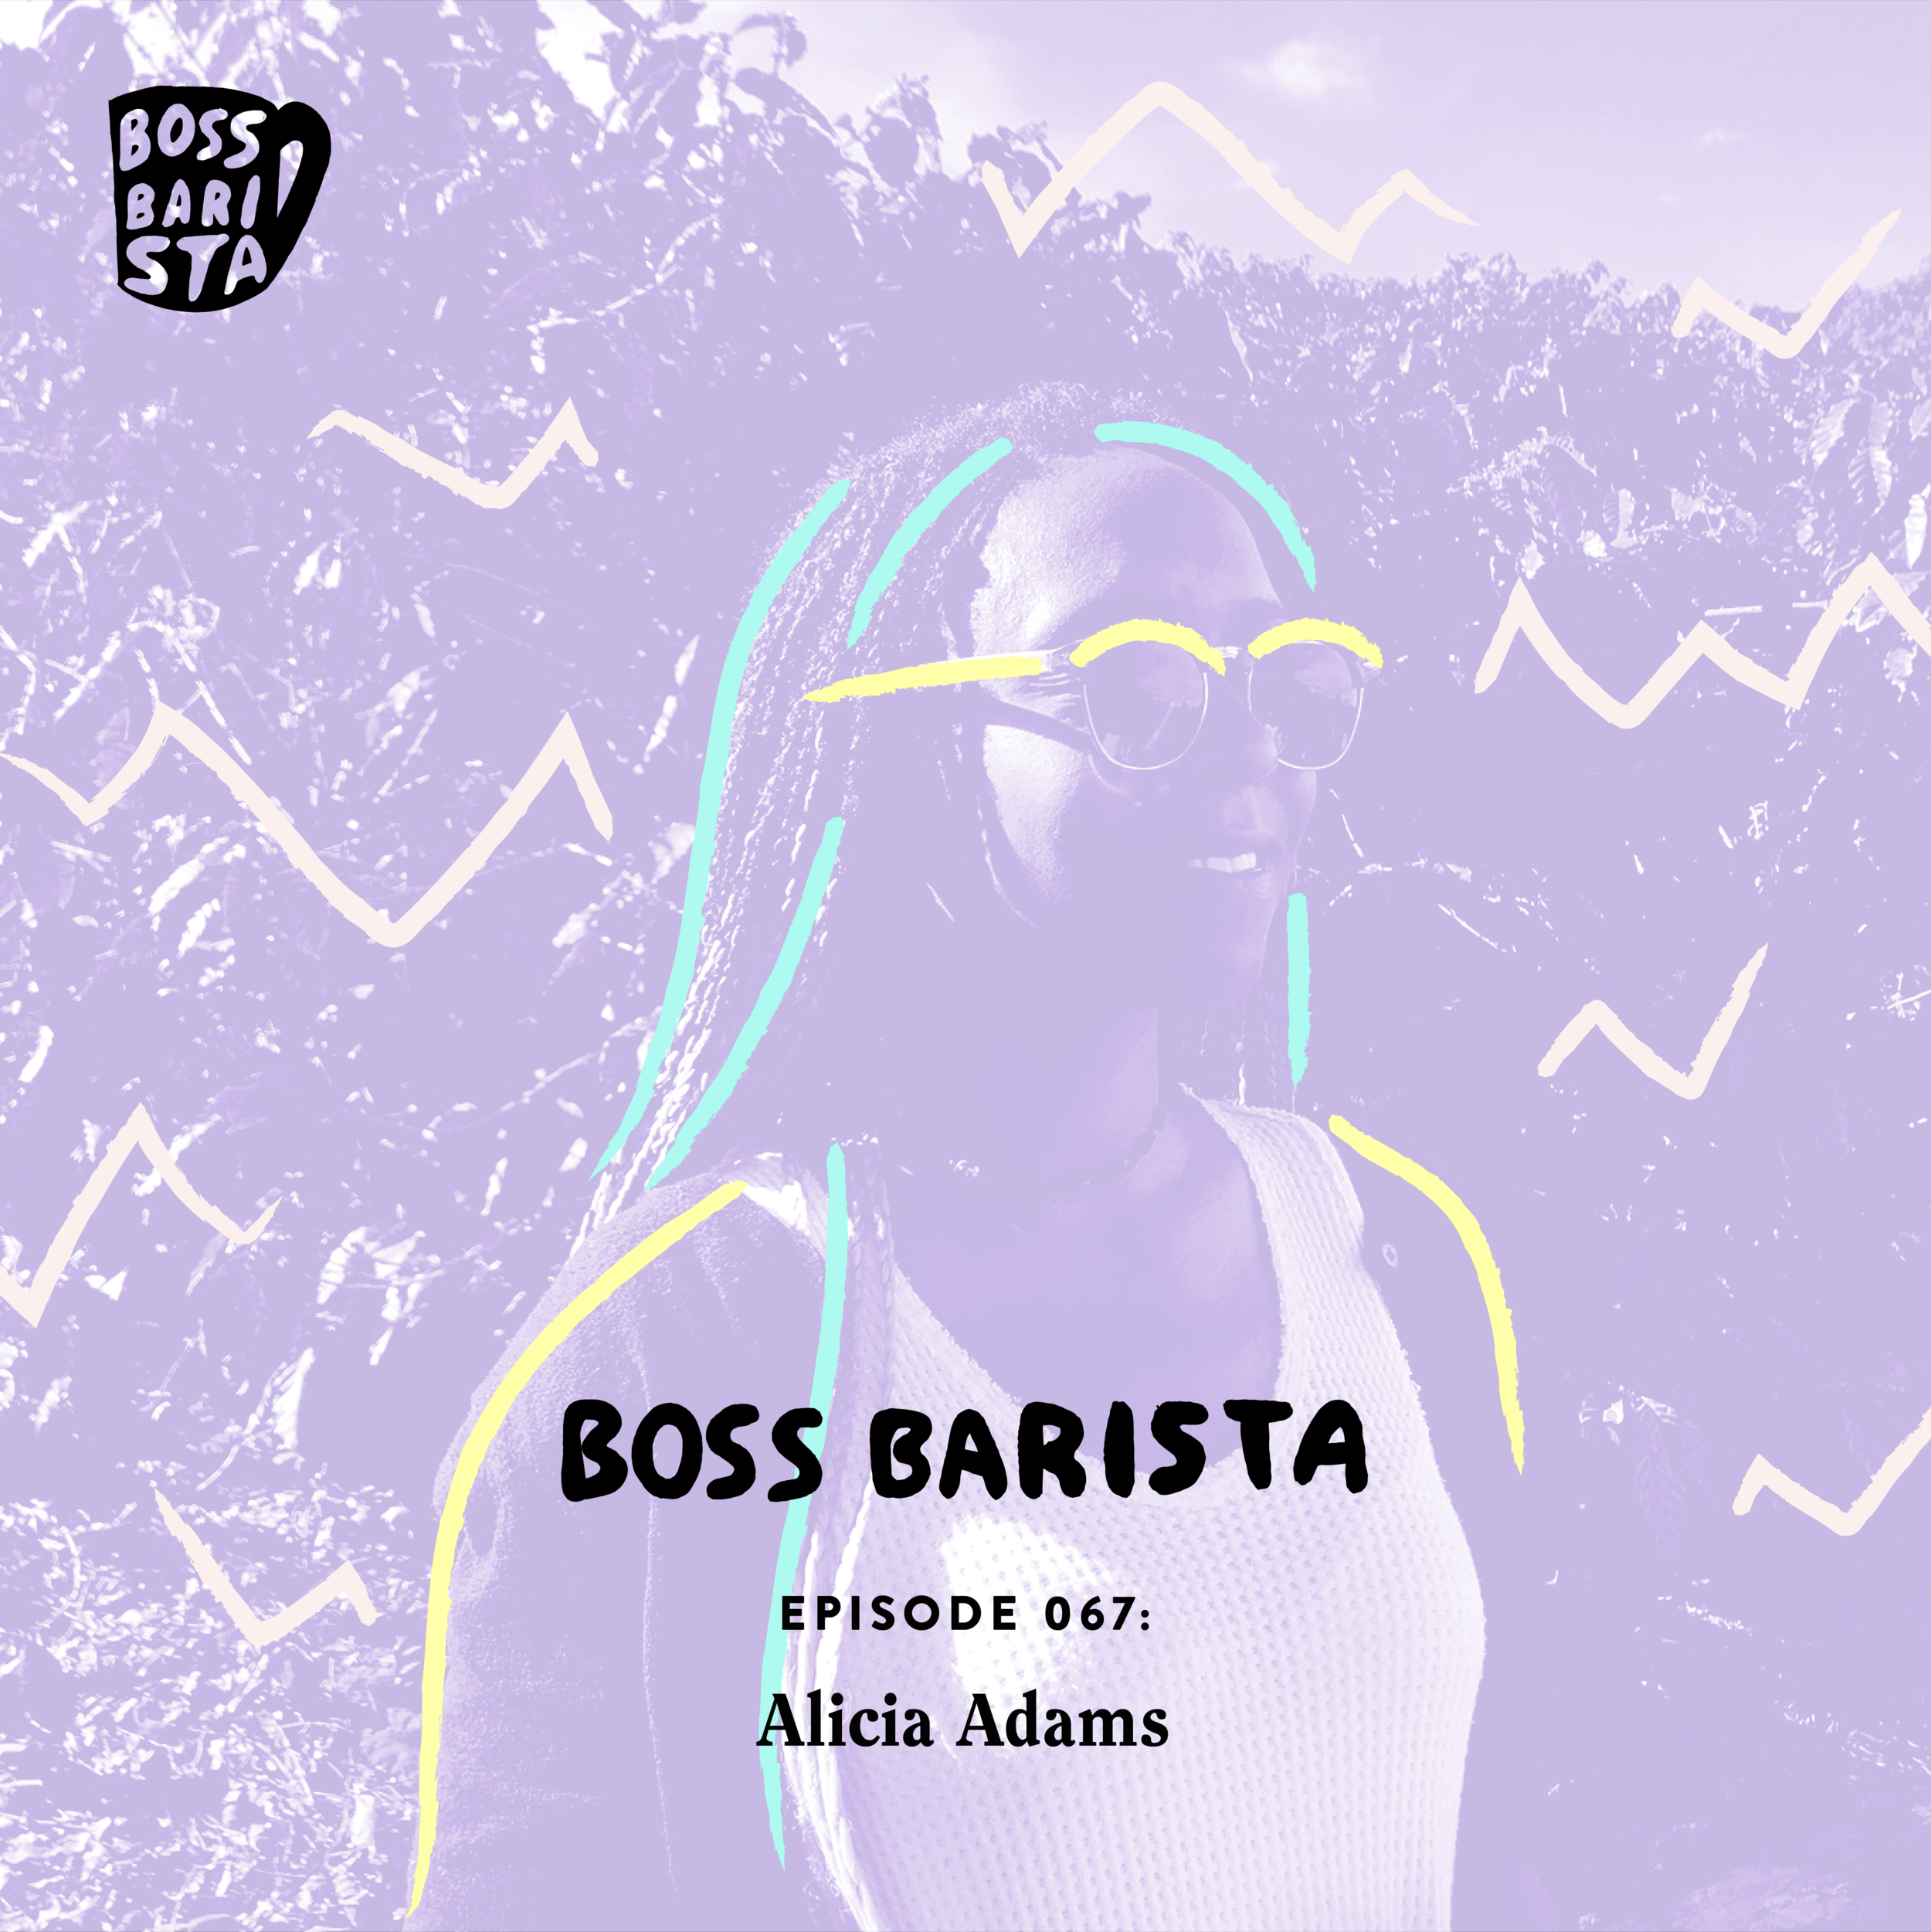 Boss_Barista_067_Cover_EPISODE_COVER.png